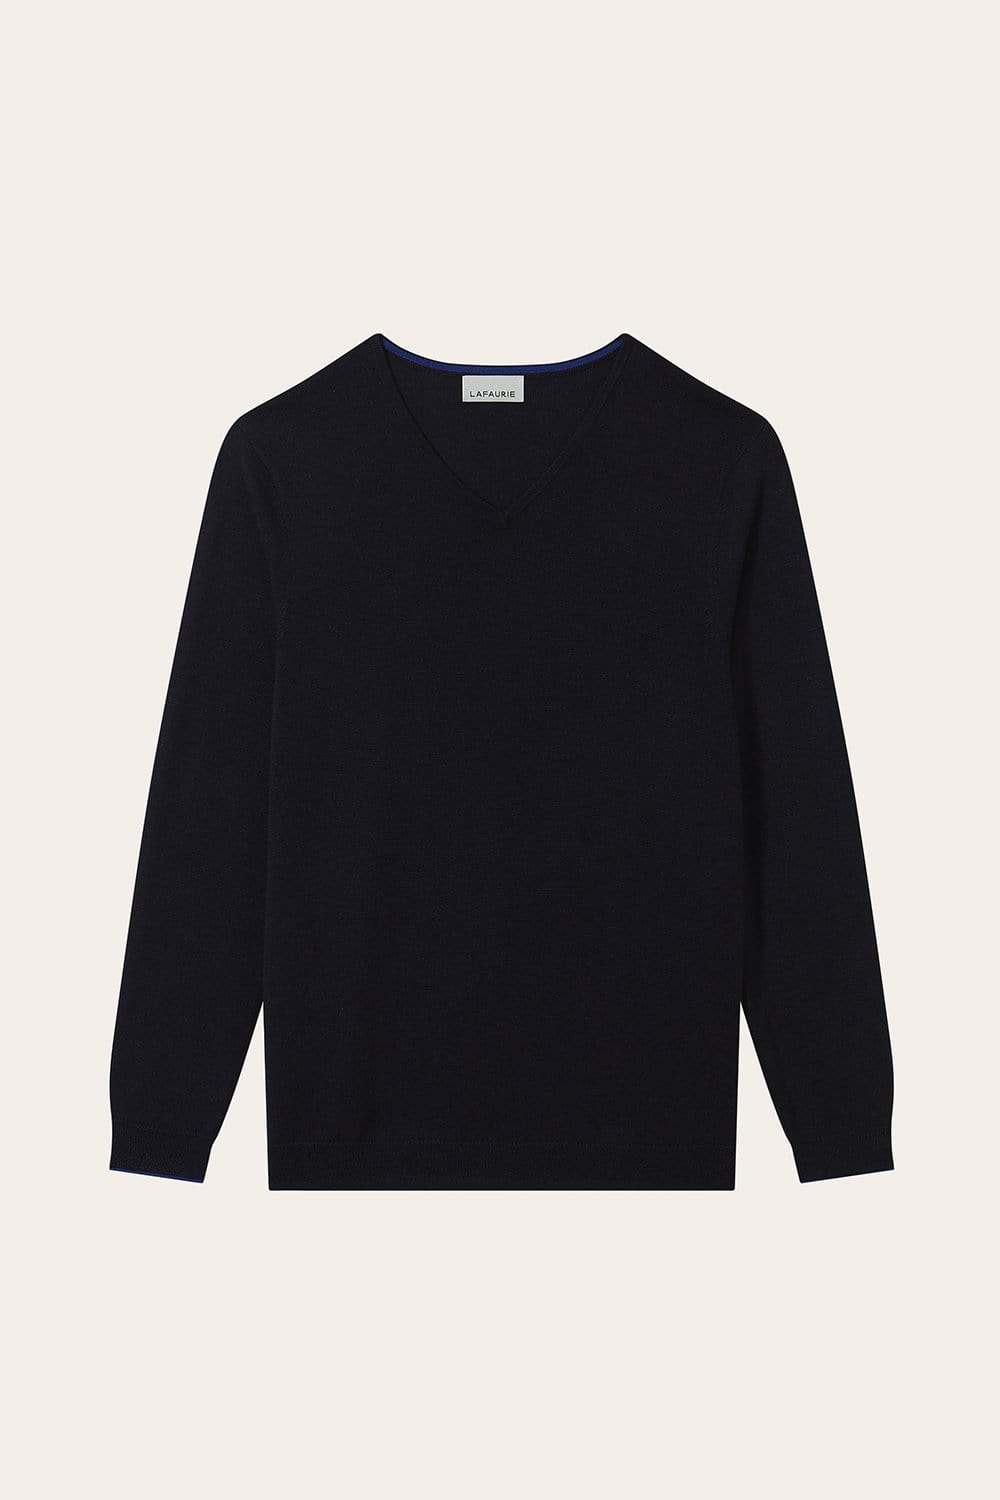 Tuck Sweater - Navy